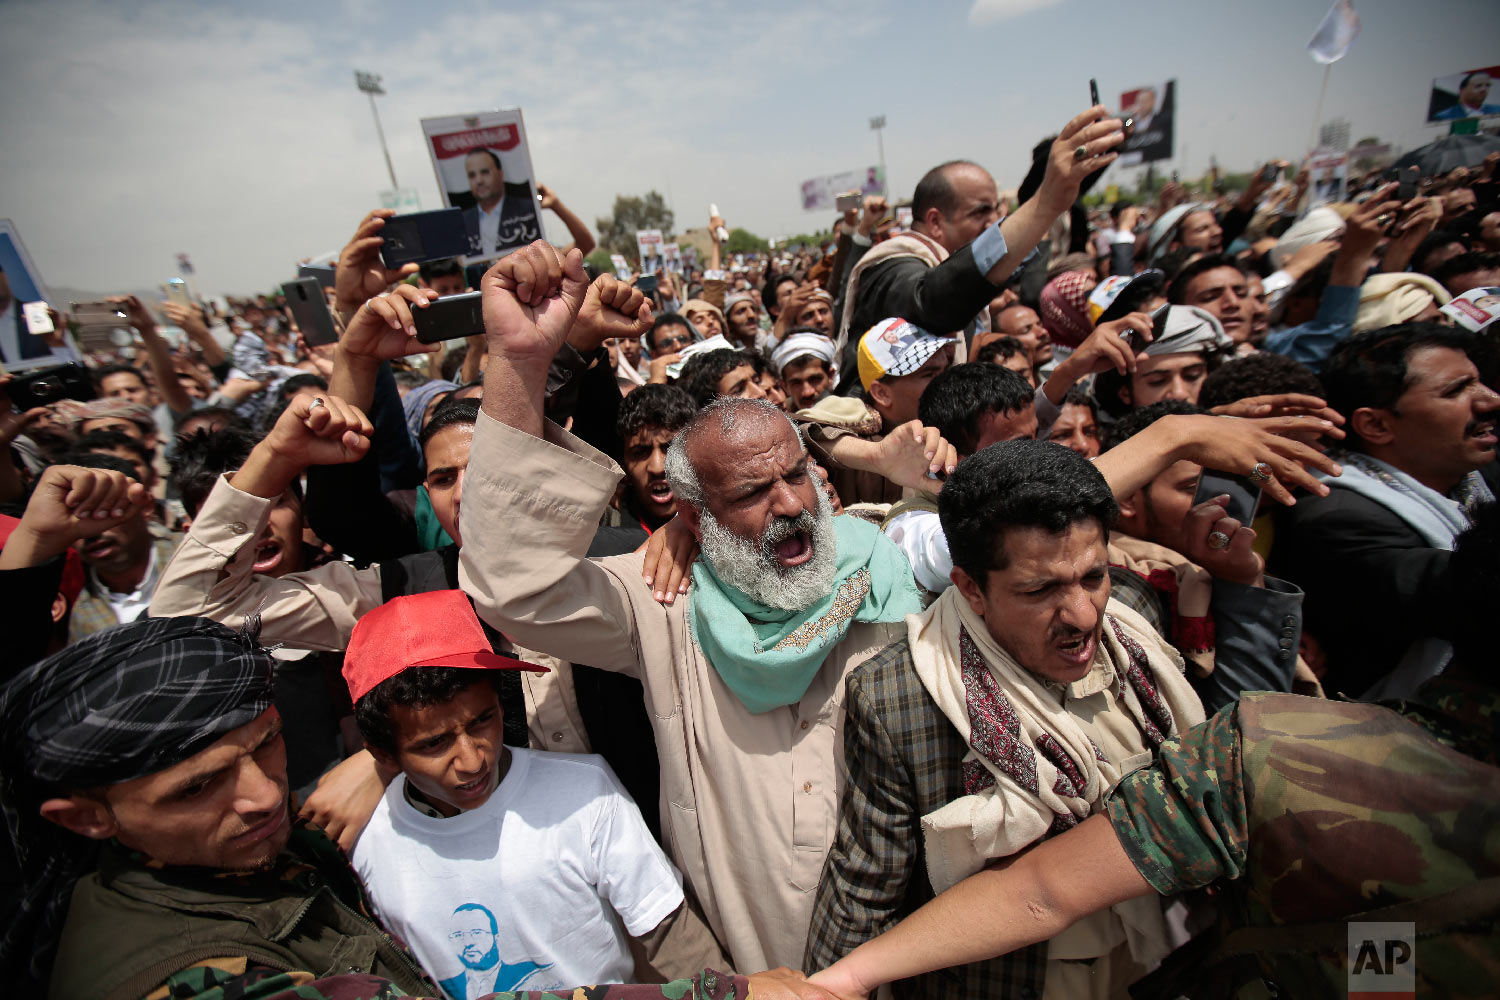 Houthi Shiite mourners chant slogans as they attend the funeral of Saleh al-Samad, a senior Houthi official who was killed by a Saudi-led coalition airstrike on April 19, in Sanaa, Yemen, April 28, 2018. (AP Photo/Hani Mohammed)